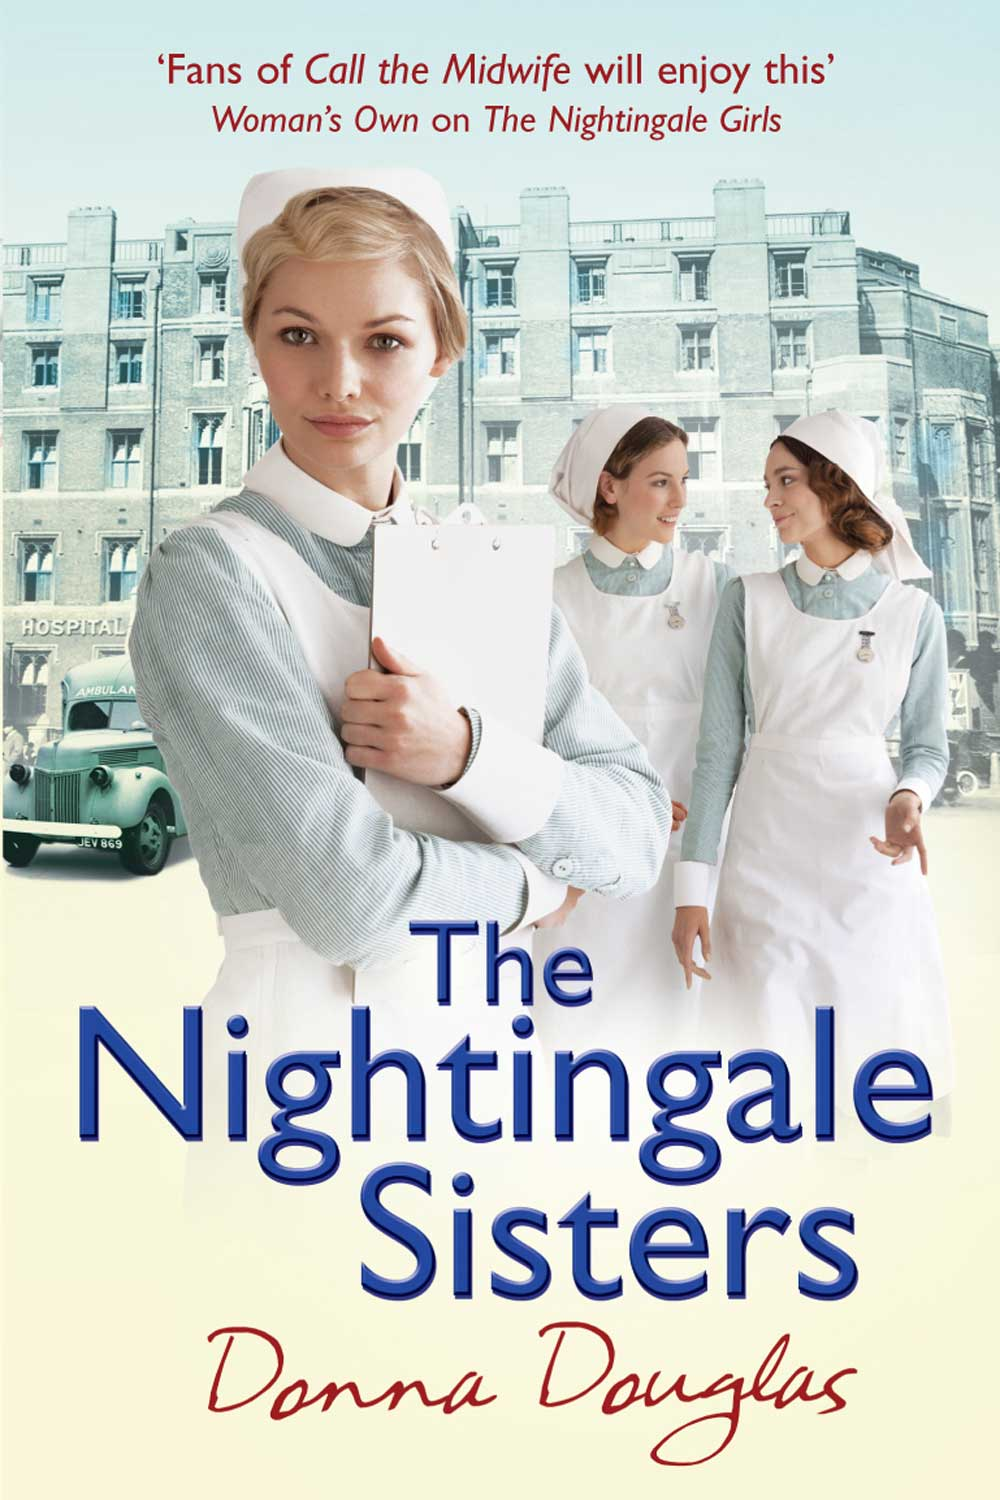 Nightingale-Sisters